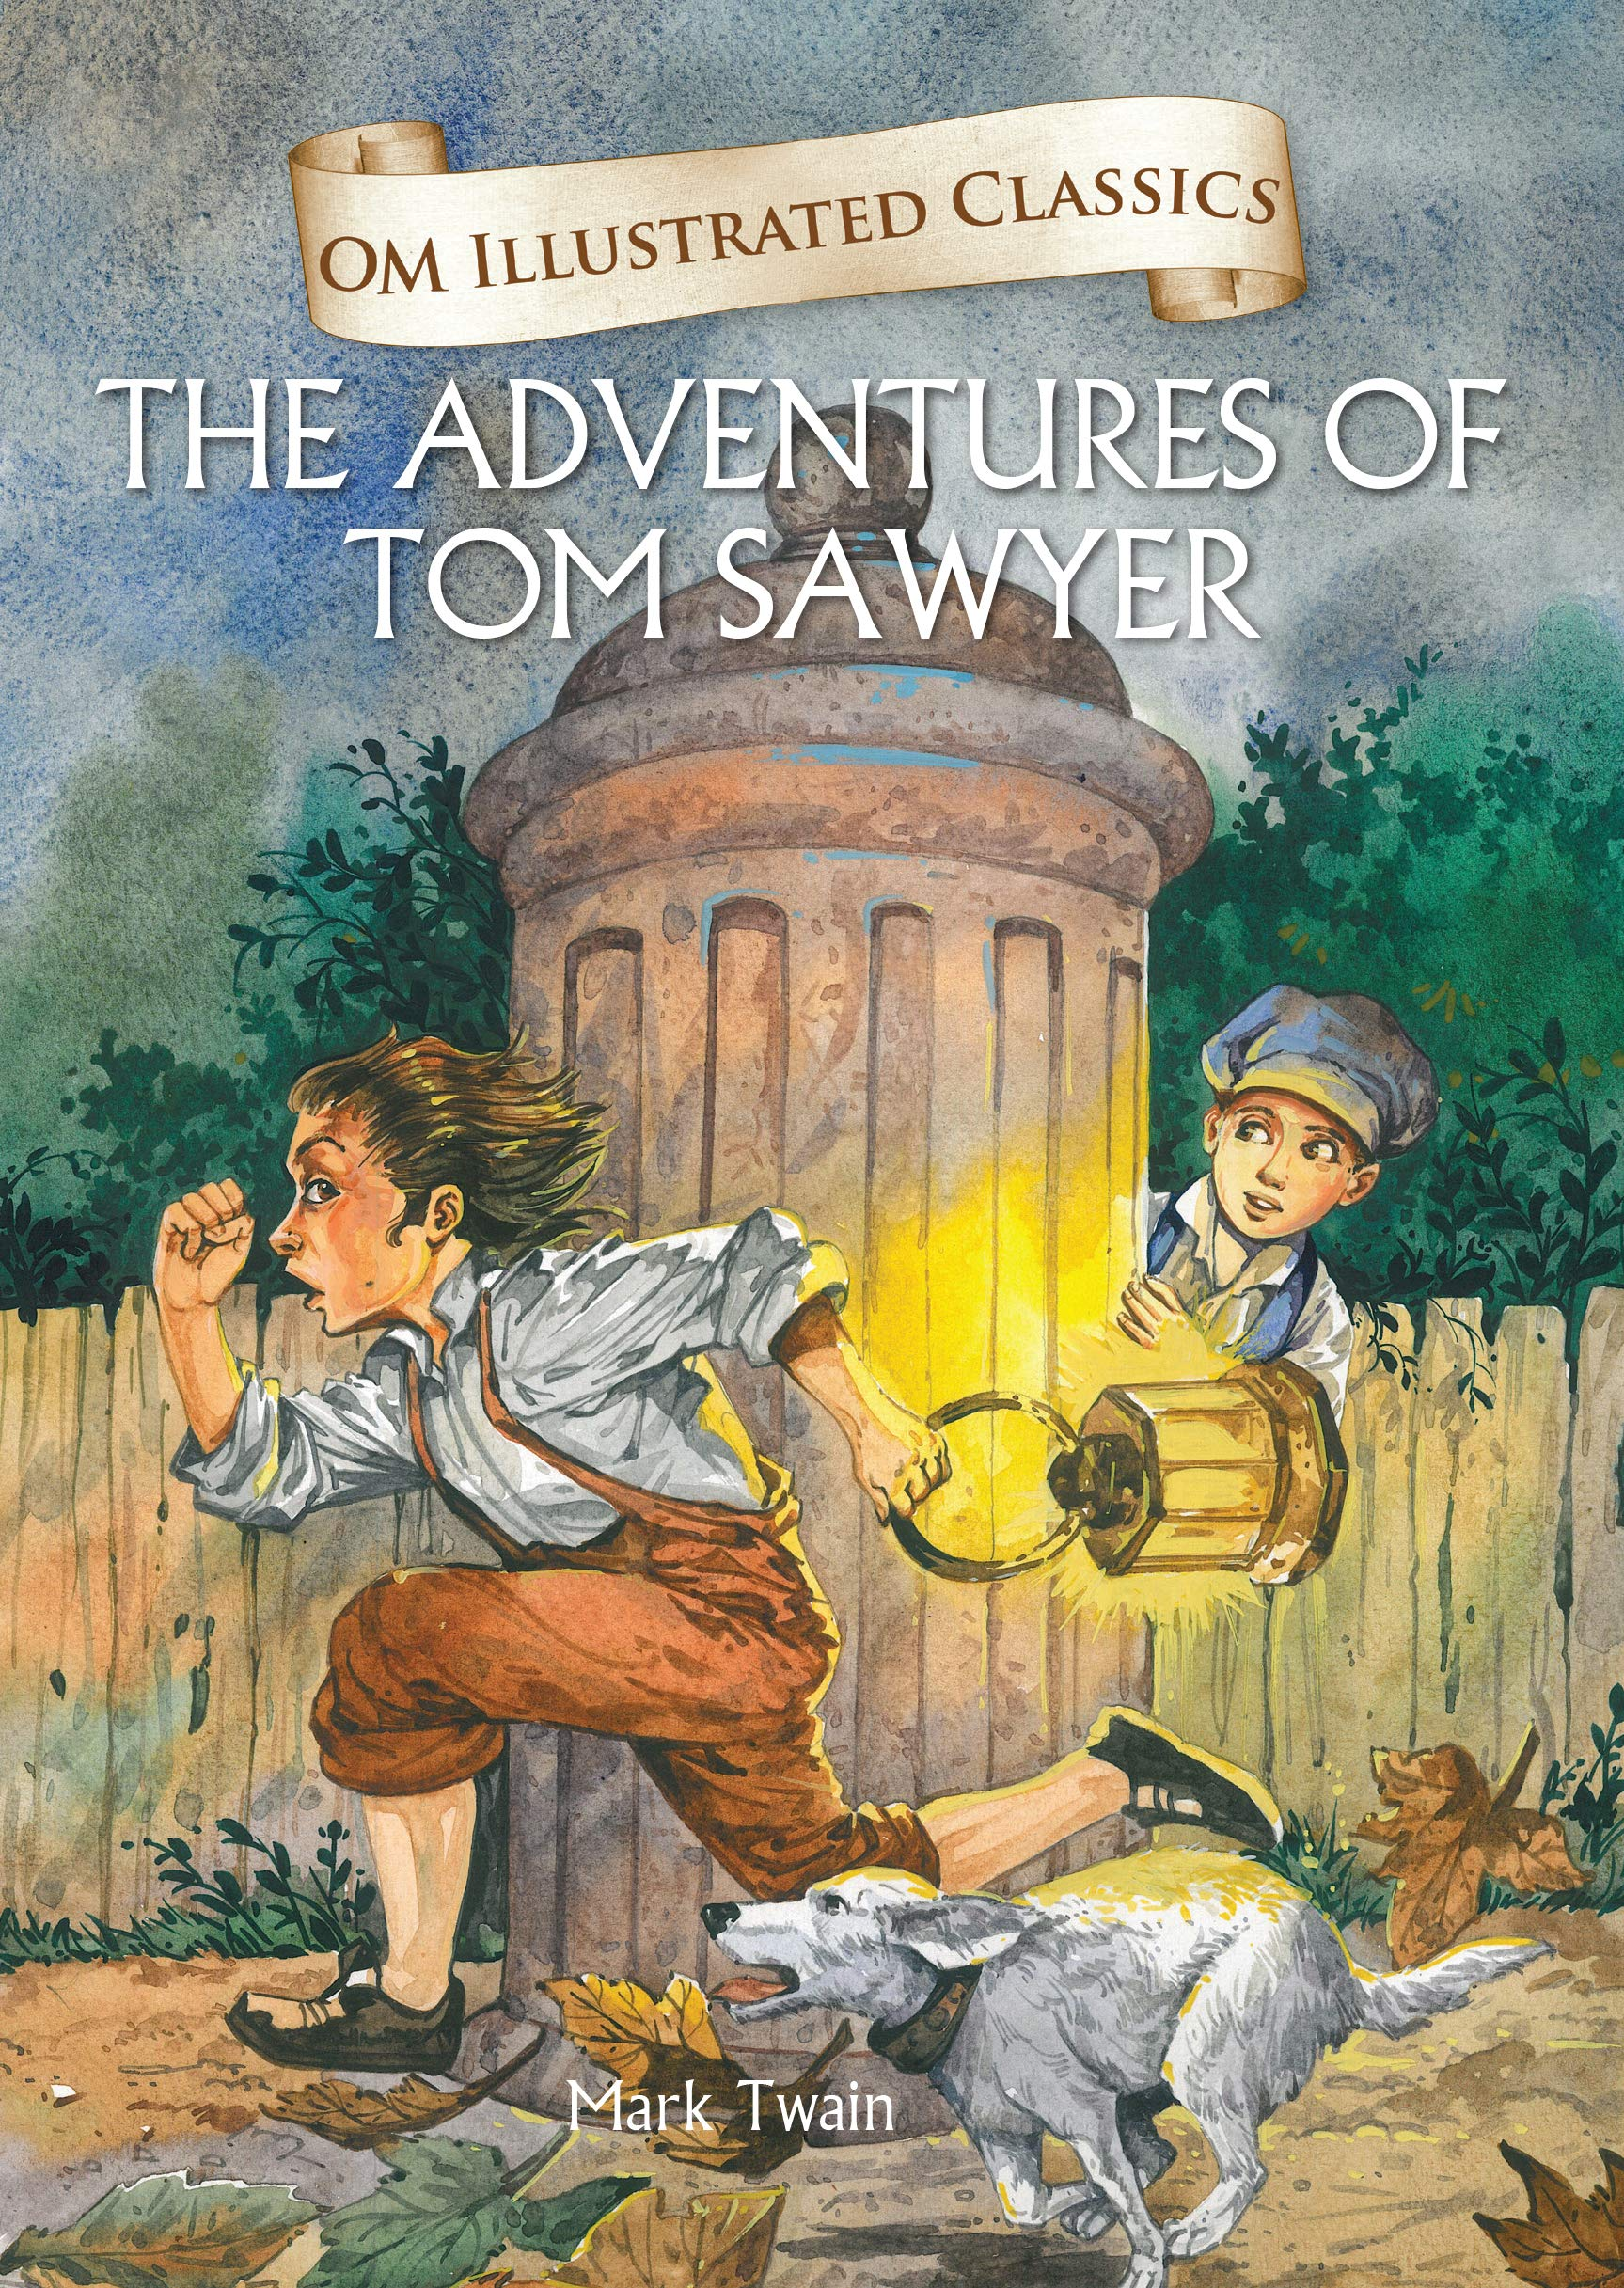 The Adventures of Tom Sawyer Book Review  Movie Reviews Simbasible